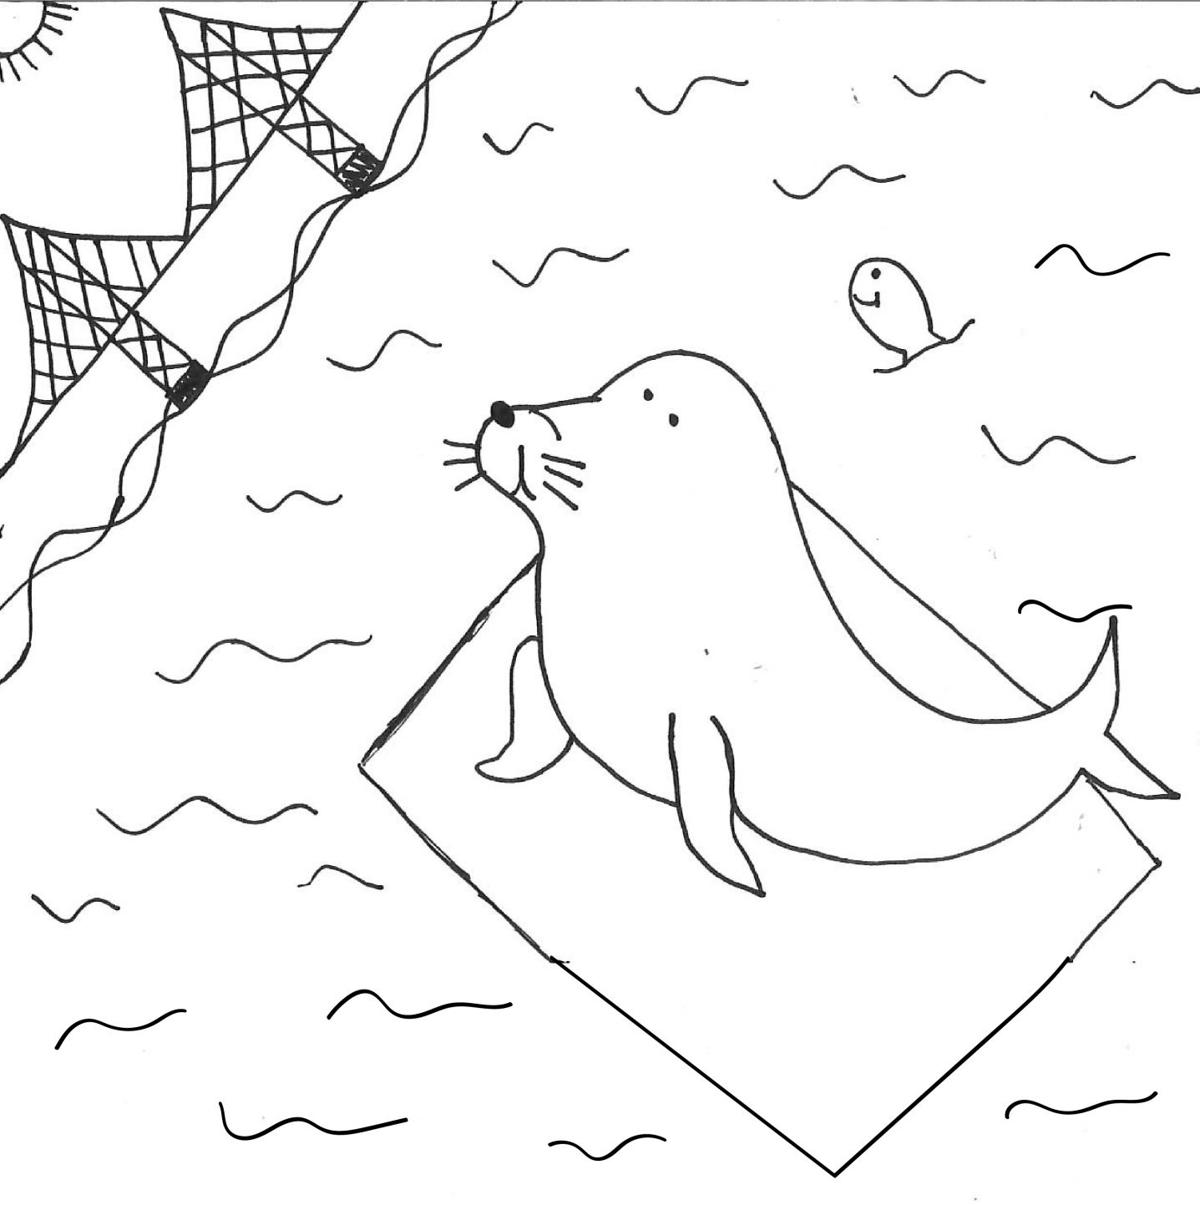 Leopard Seal Coloring Page | Leopard seal, Mammals, Coloring pages | 1205x1200